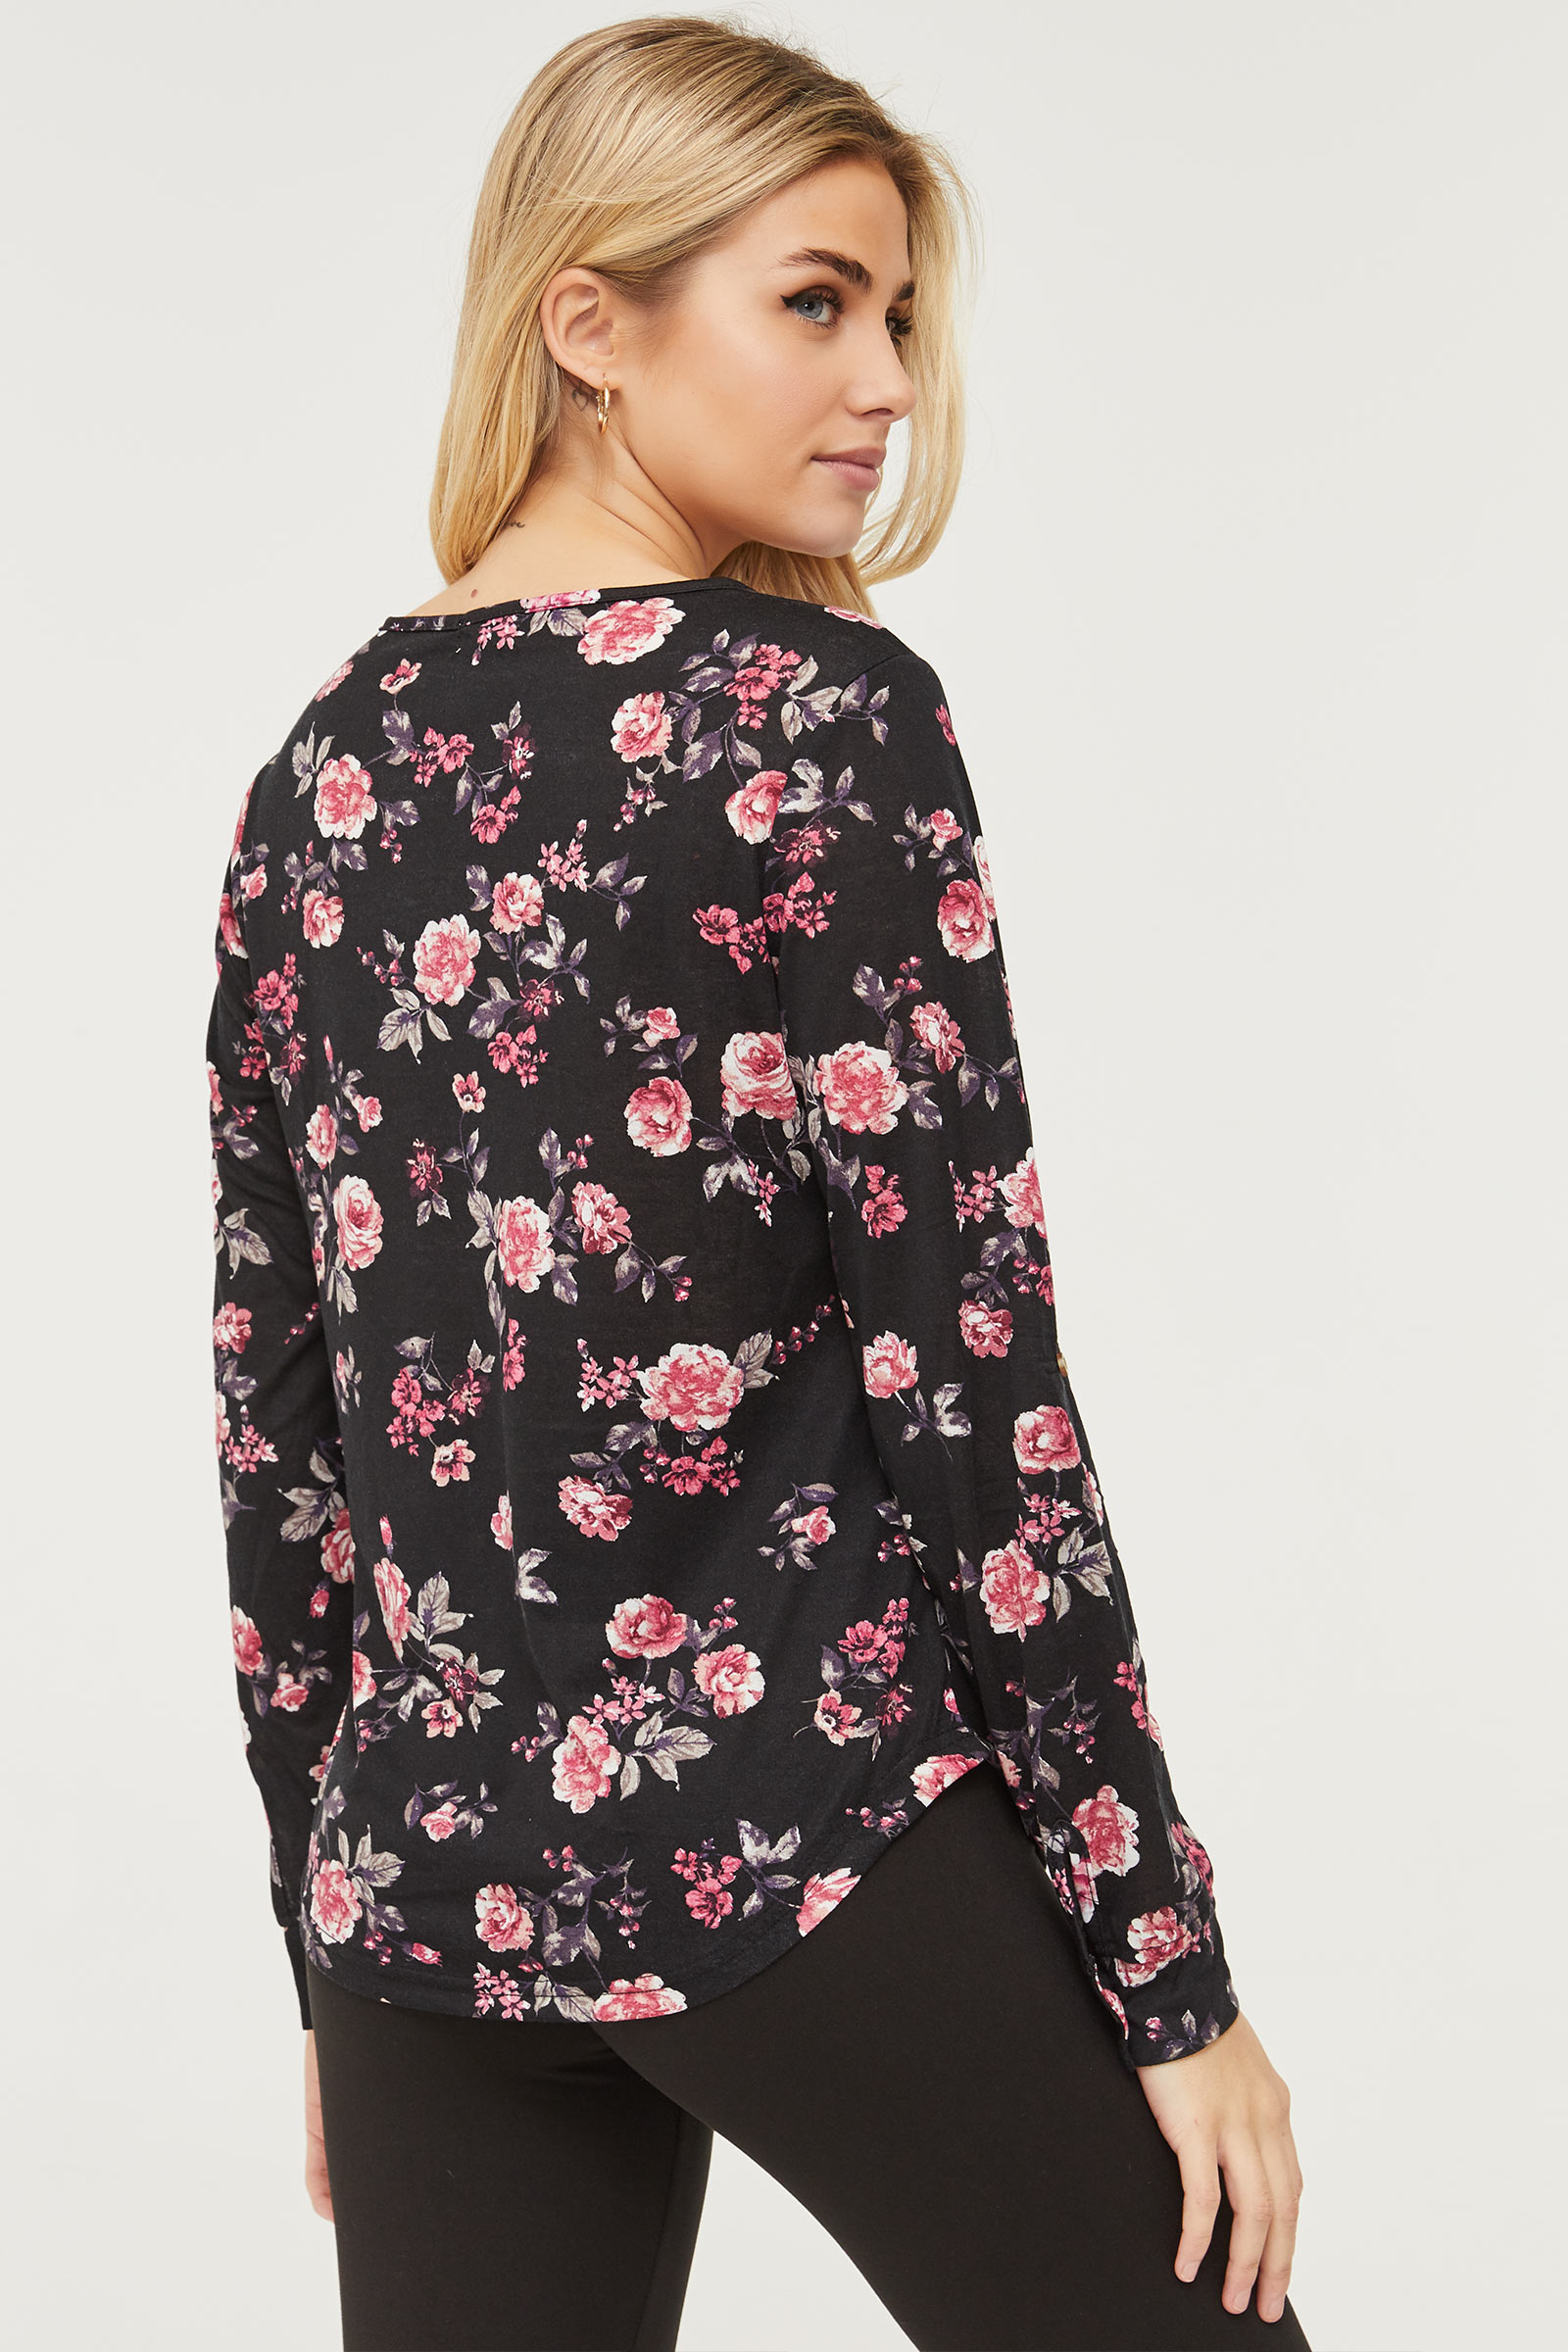 Zipped Floral Top